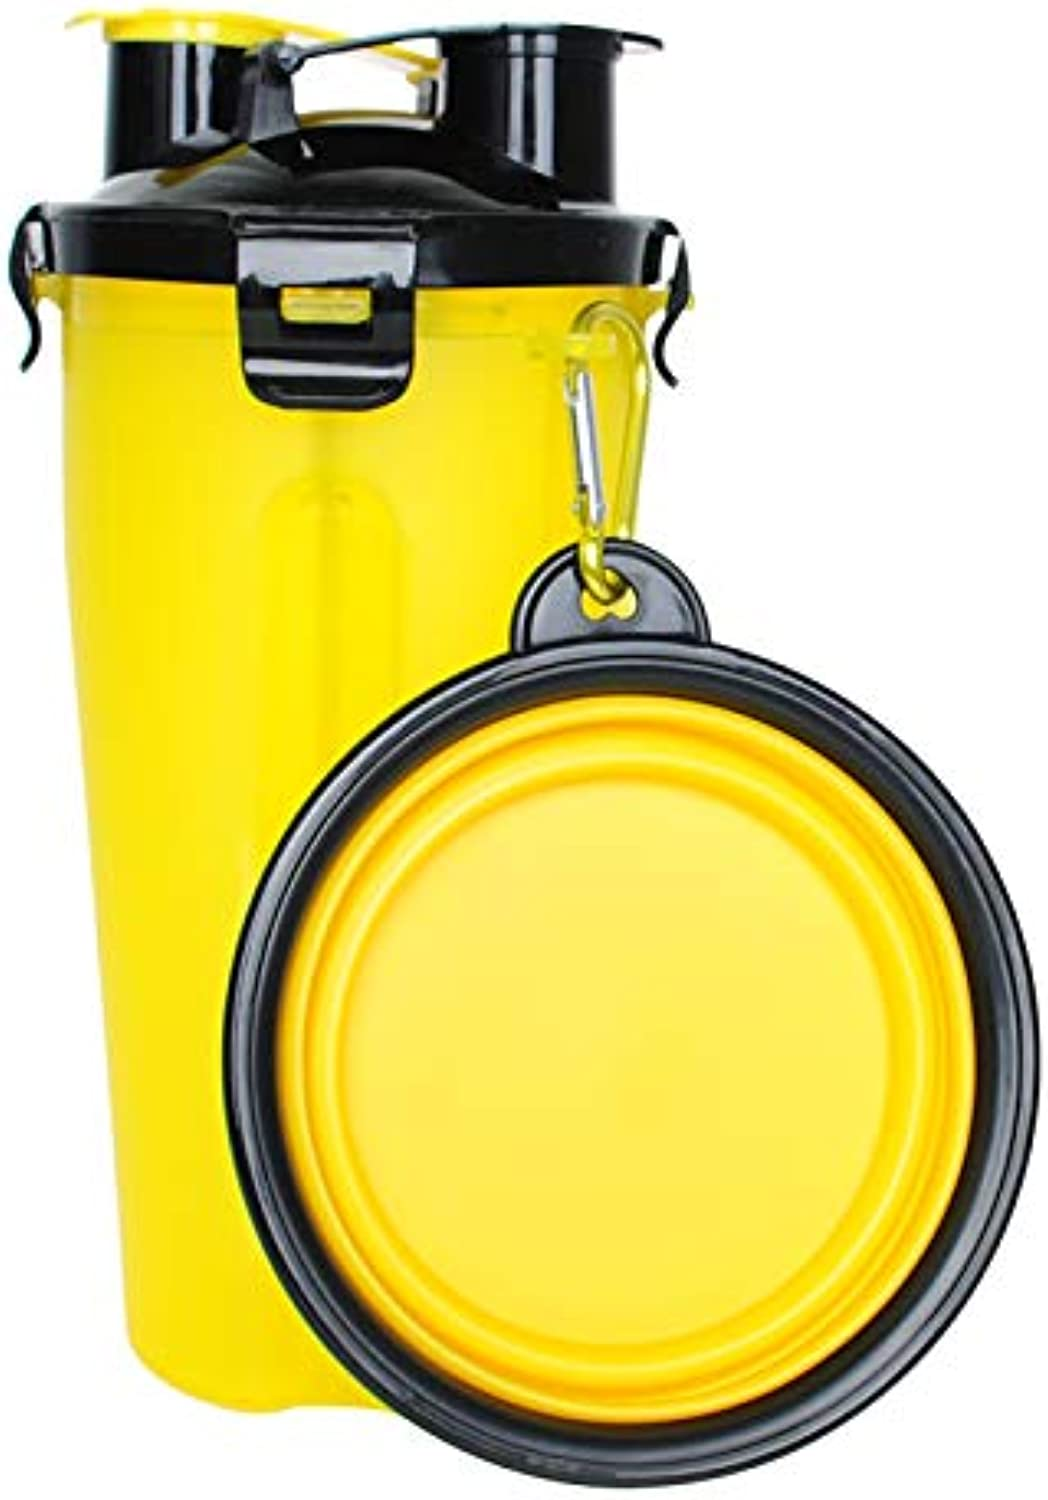 Pet Room (3Pack) 2 in 1 Collapsible Travel Dog Water Bottle and Bowl + Disposable Waste Poop Bag with Dispenser (Yellow Bottle)